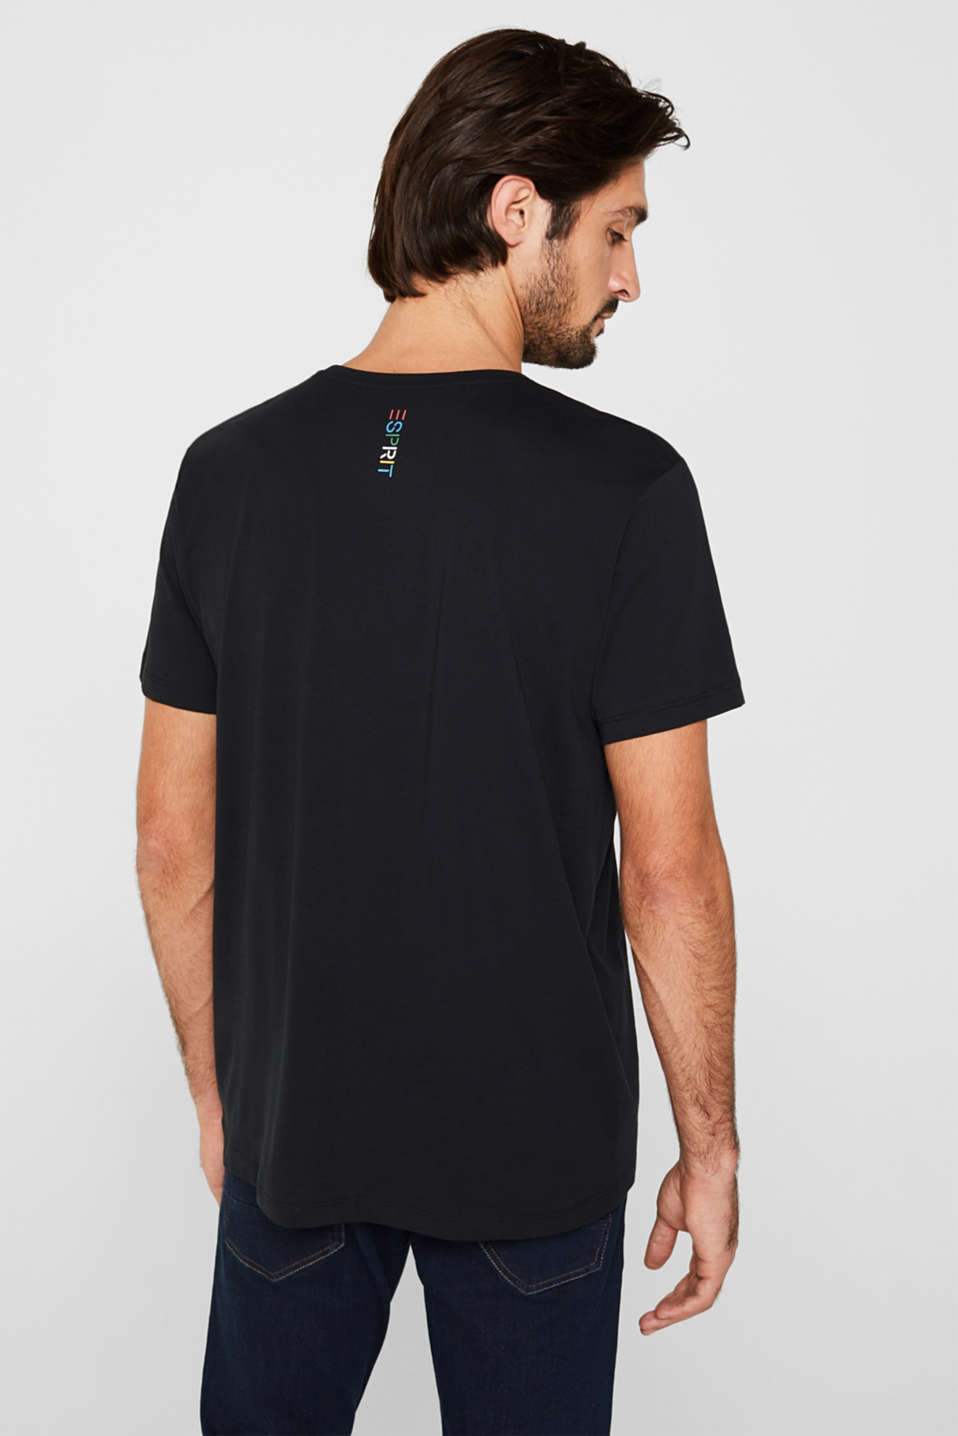 Jersey T-shirt in 100% cotton, BLACK 2, detail image number 3